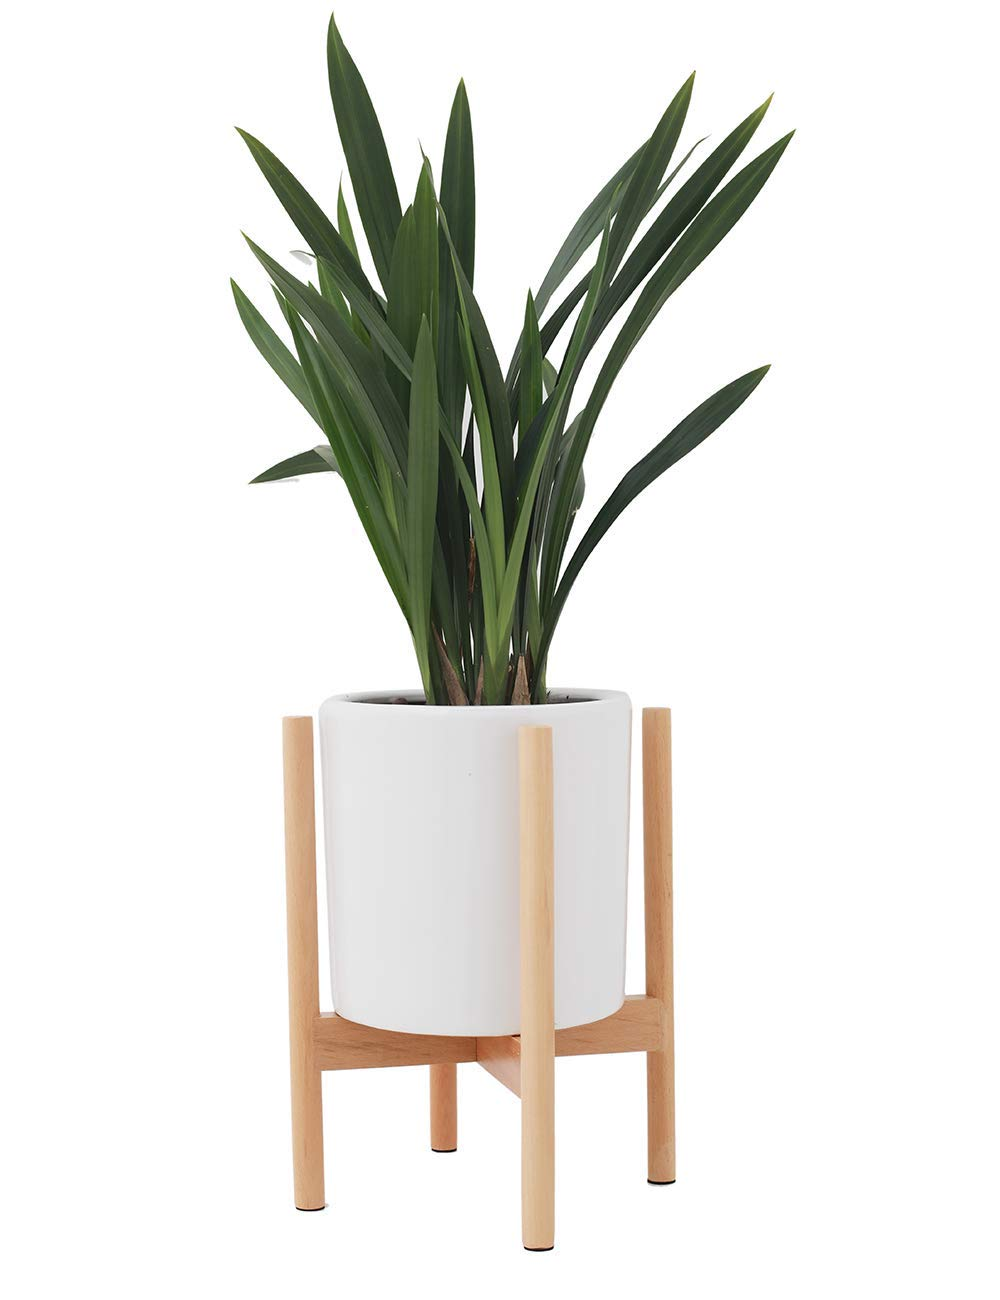 Adjustable Wooden Planter Holder and Flower Pot Stand Mid Century Modern Home Decor House Apartment and Balcony Display Plant Stand for Indoor or Outdoor Live and Artificial Potted Plants